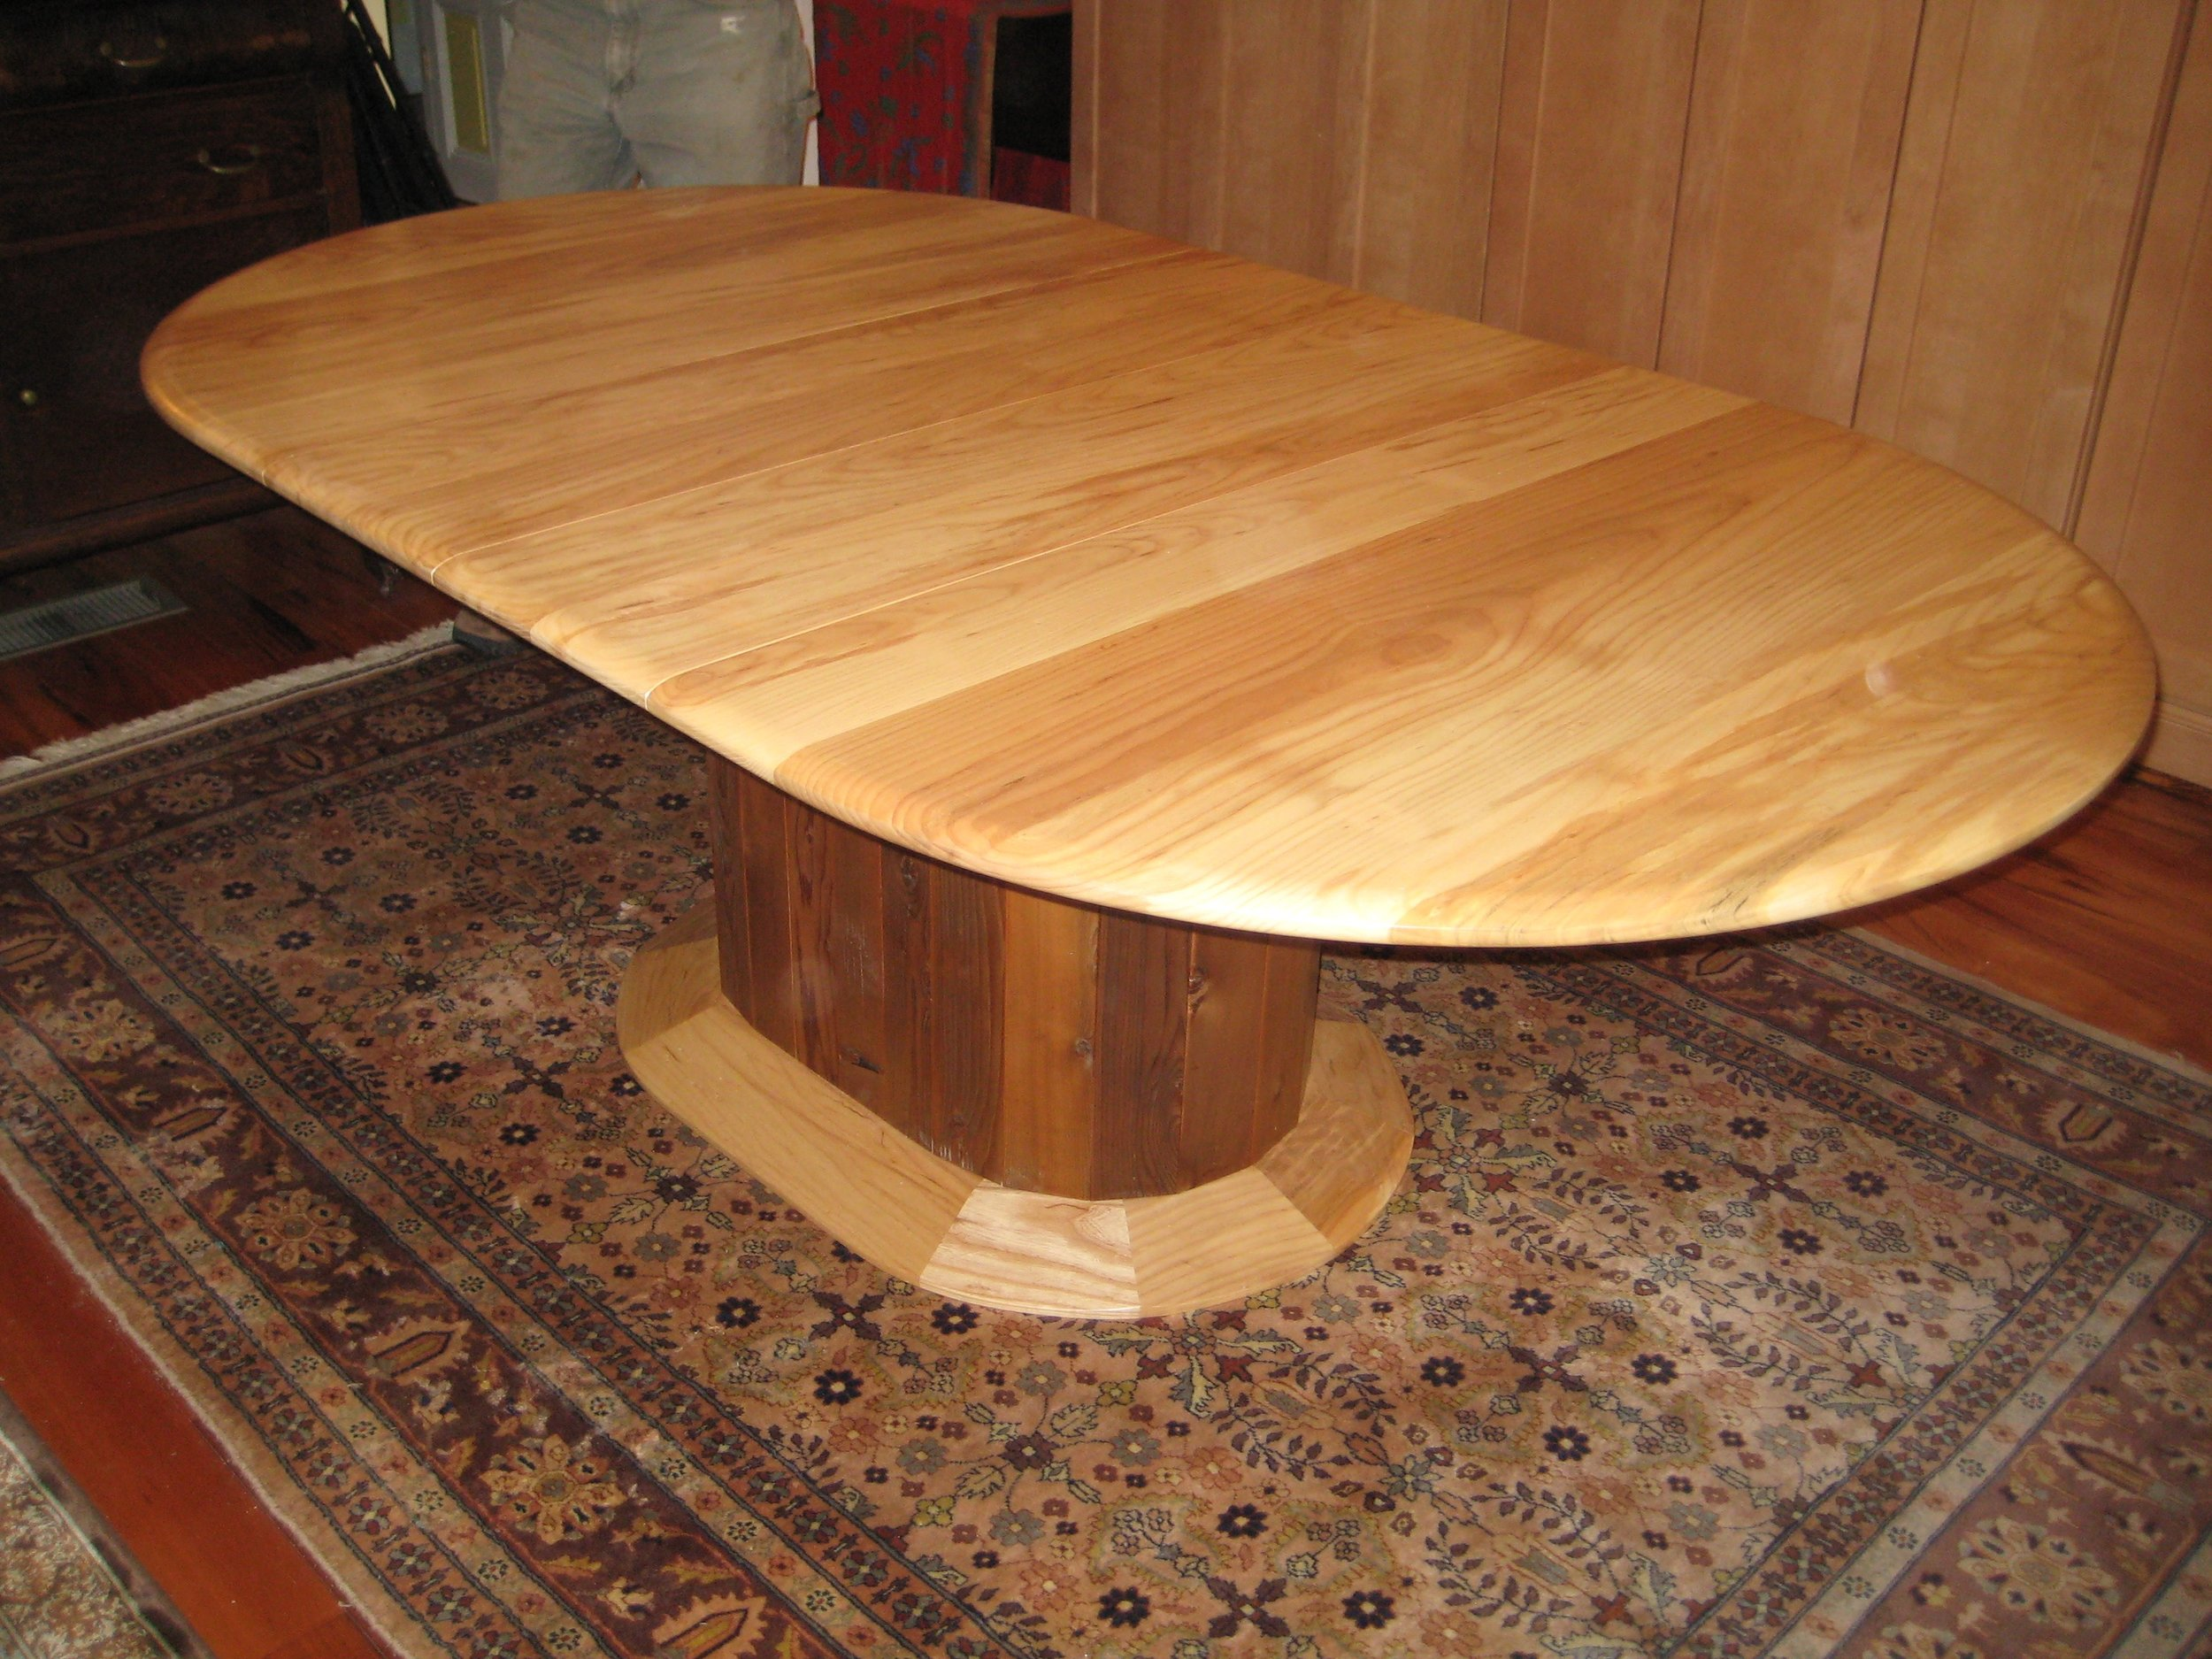 extension-table-osbakken-003.jpg